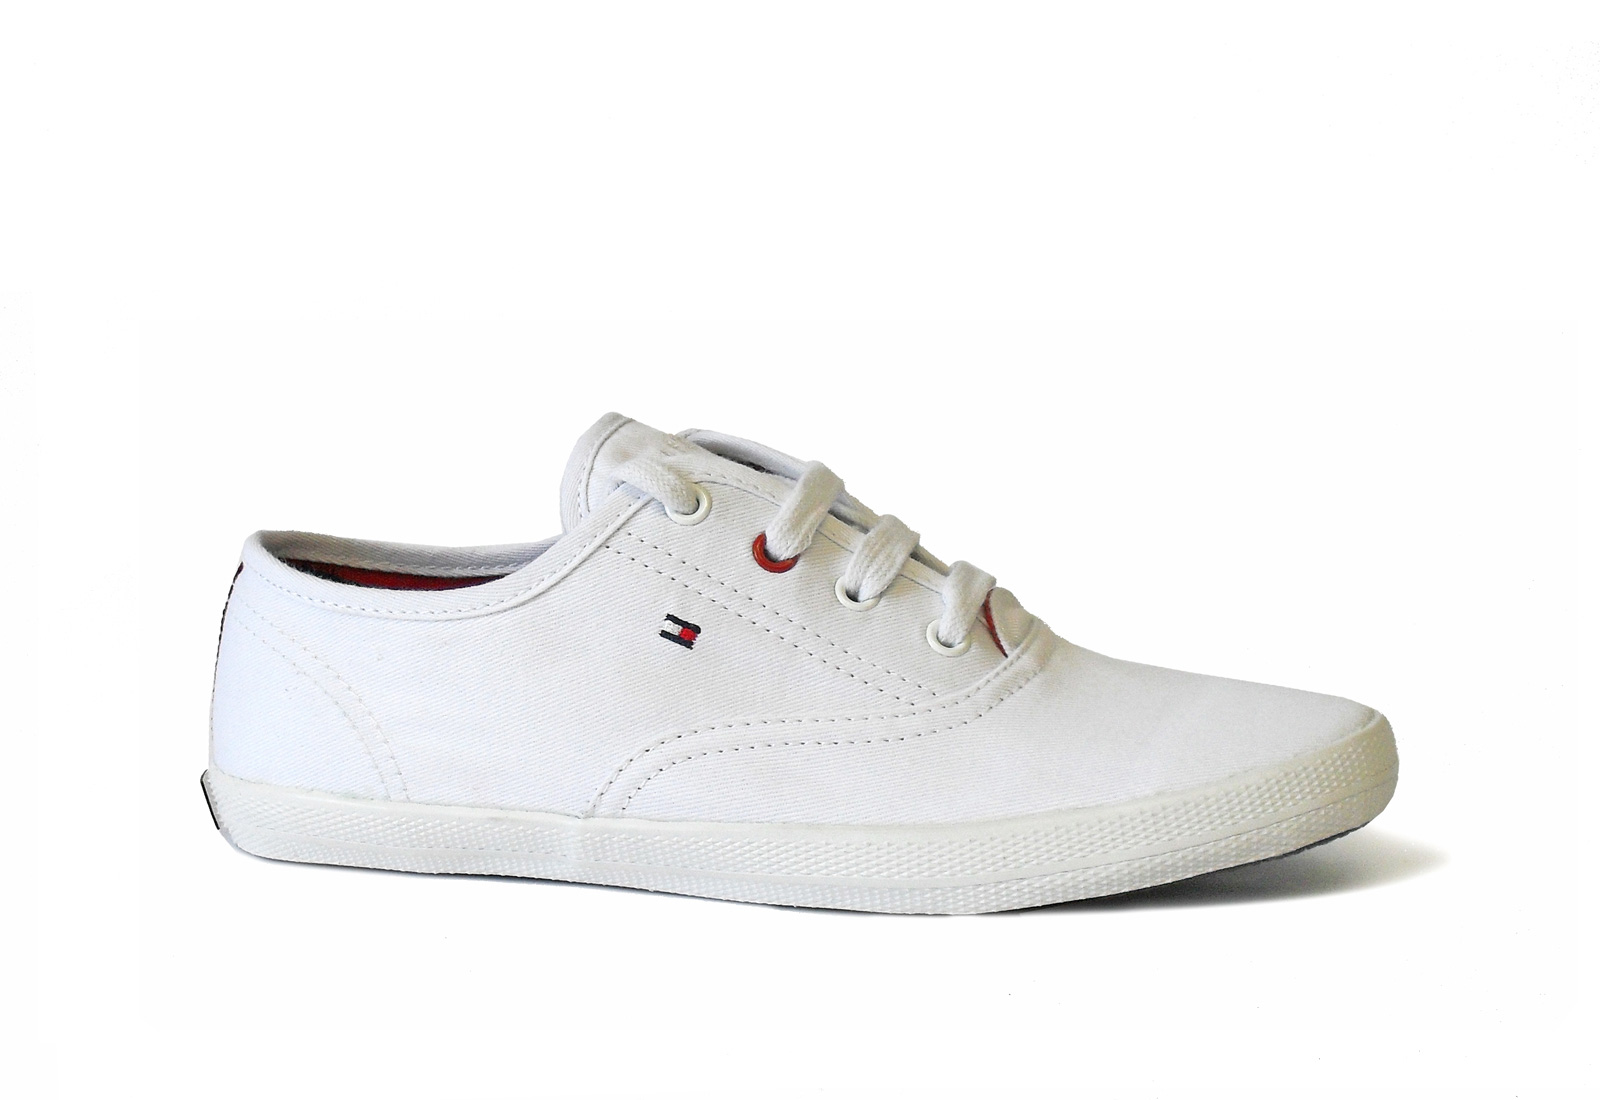 Tommy Hilfiger Tornacipő - Victoria 1 - 13s-5545-100 - Office Shoes ... 10575a6874